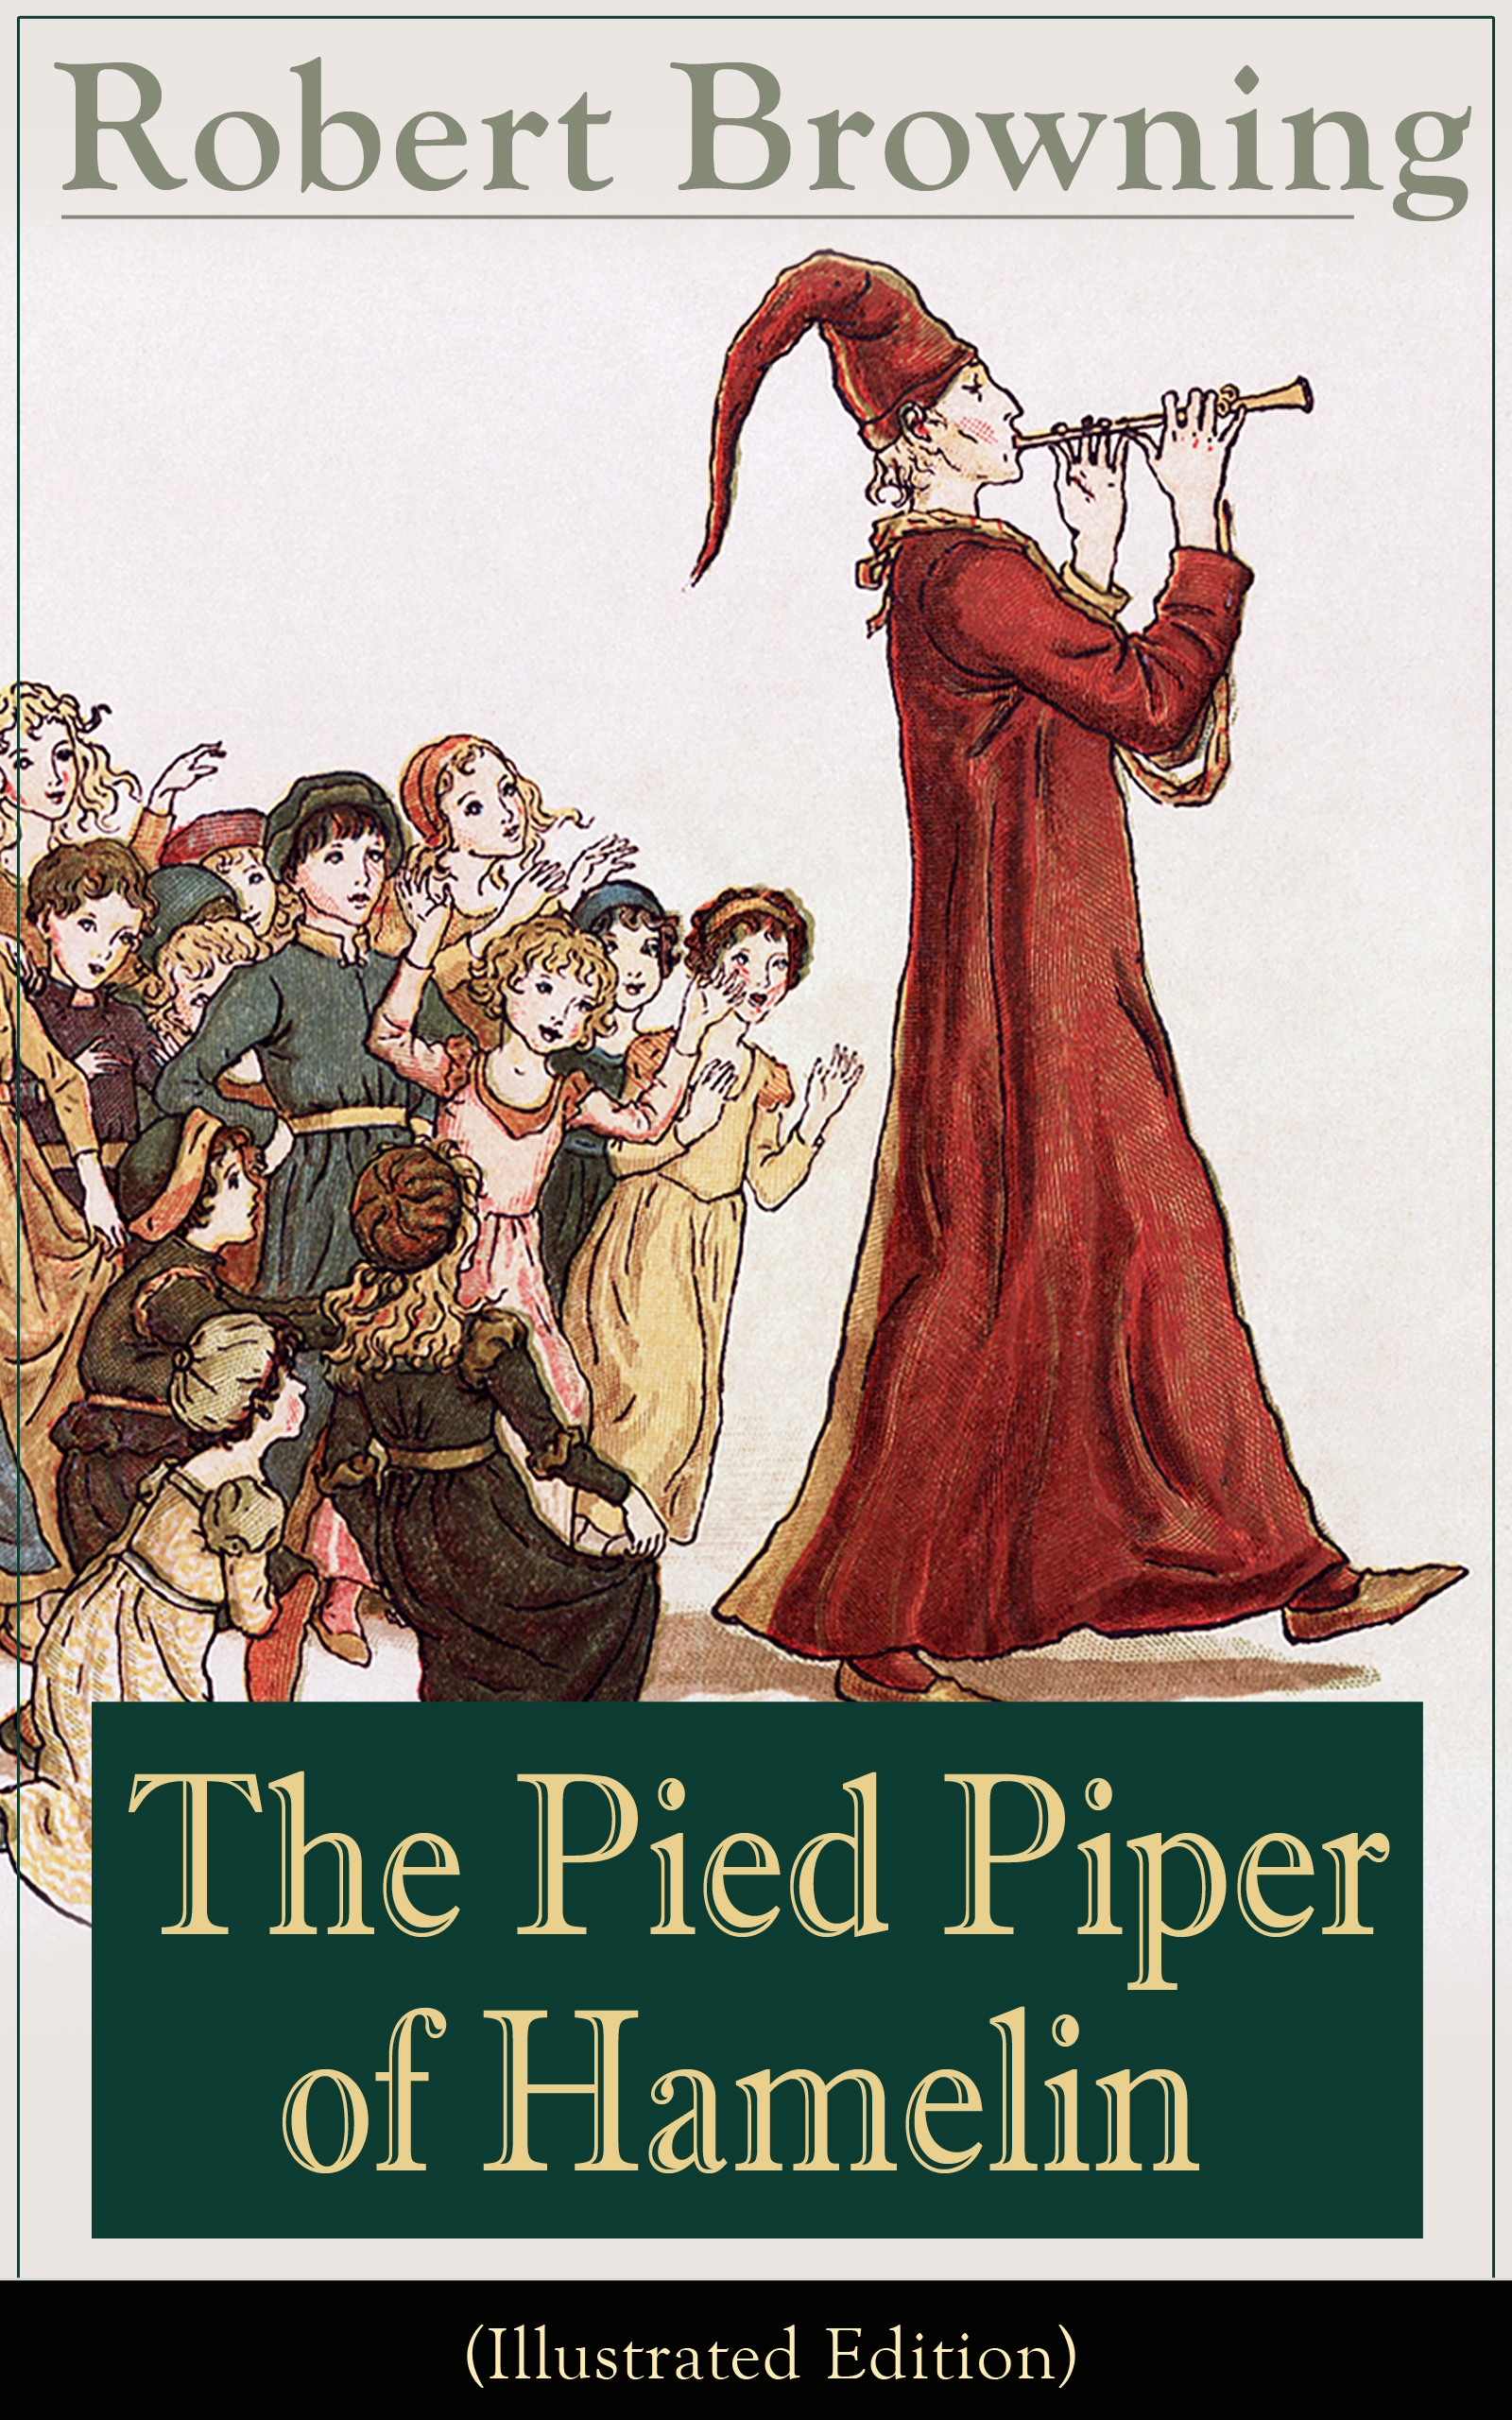 Robert Browning The Pied Piper of Hamelin (Illustrated Edition) robert browning the pied piper of hamelin and other poems